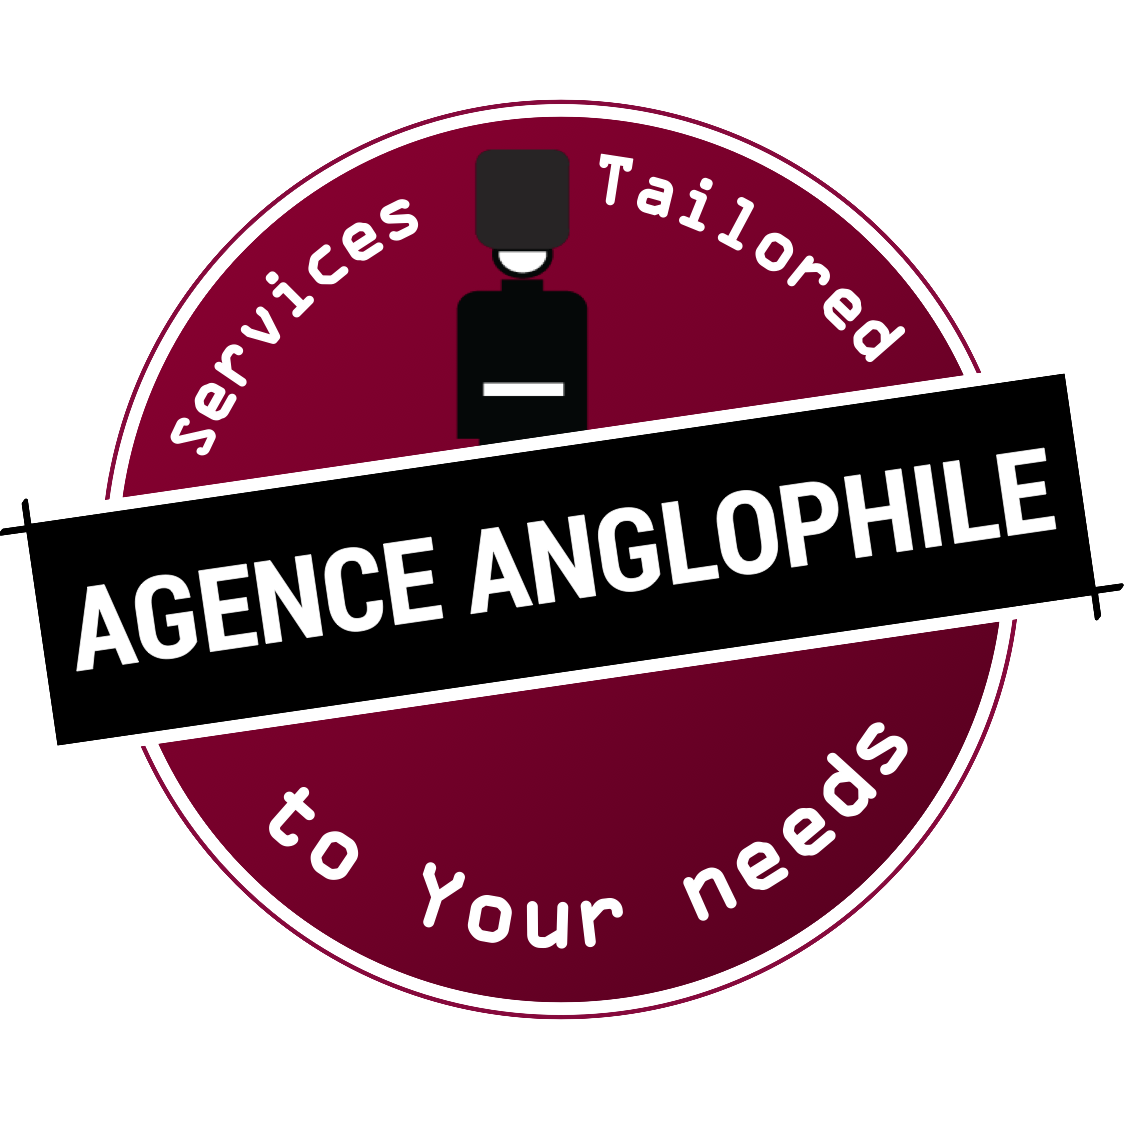 Agence Anglophile | Formation, Traduction, Enregistrements en Anglais